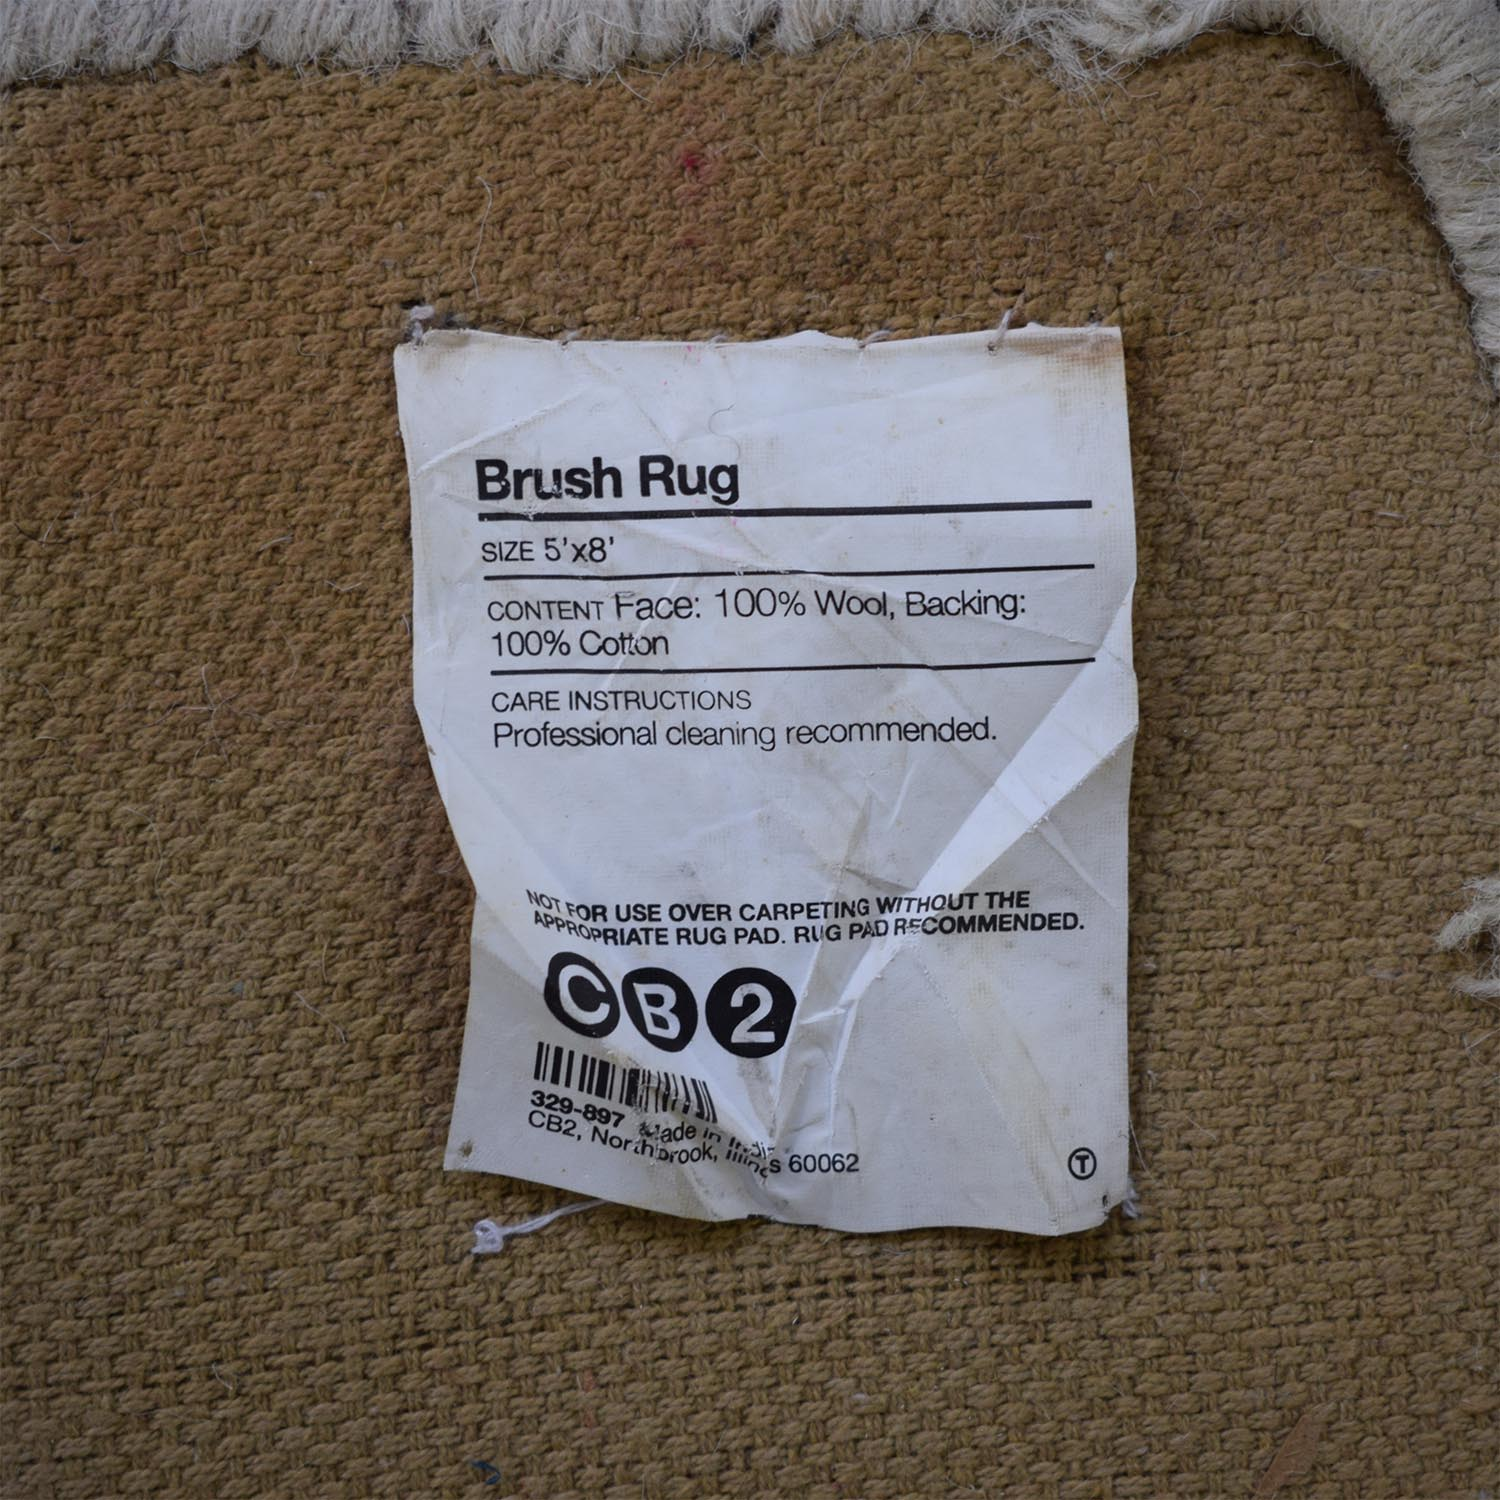 CB2 CB2 Contemporary Brush Rug price